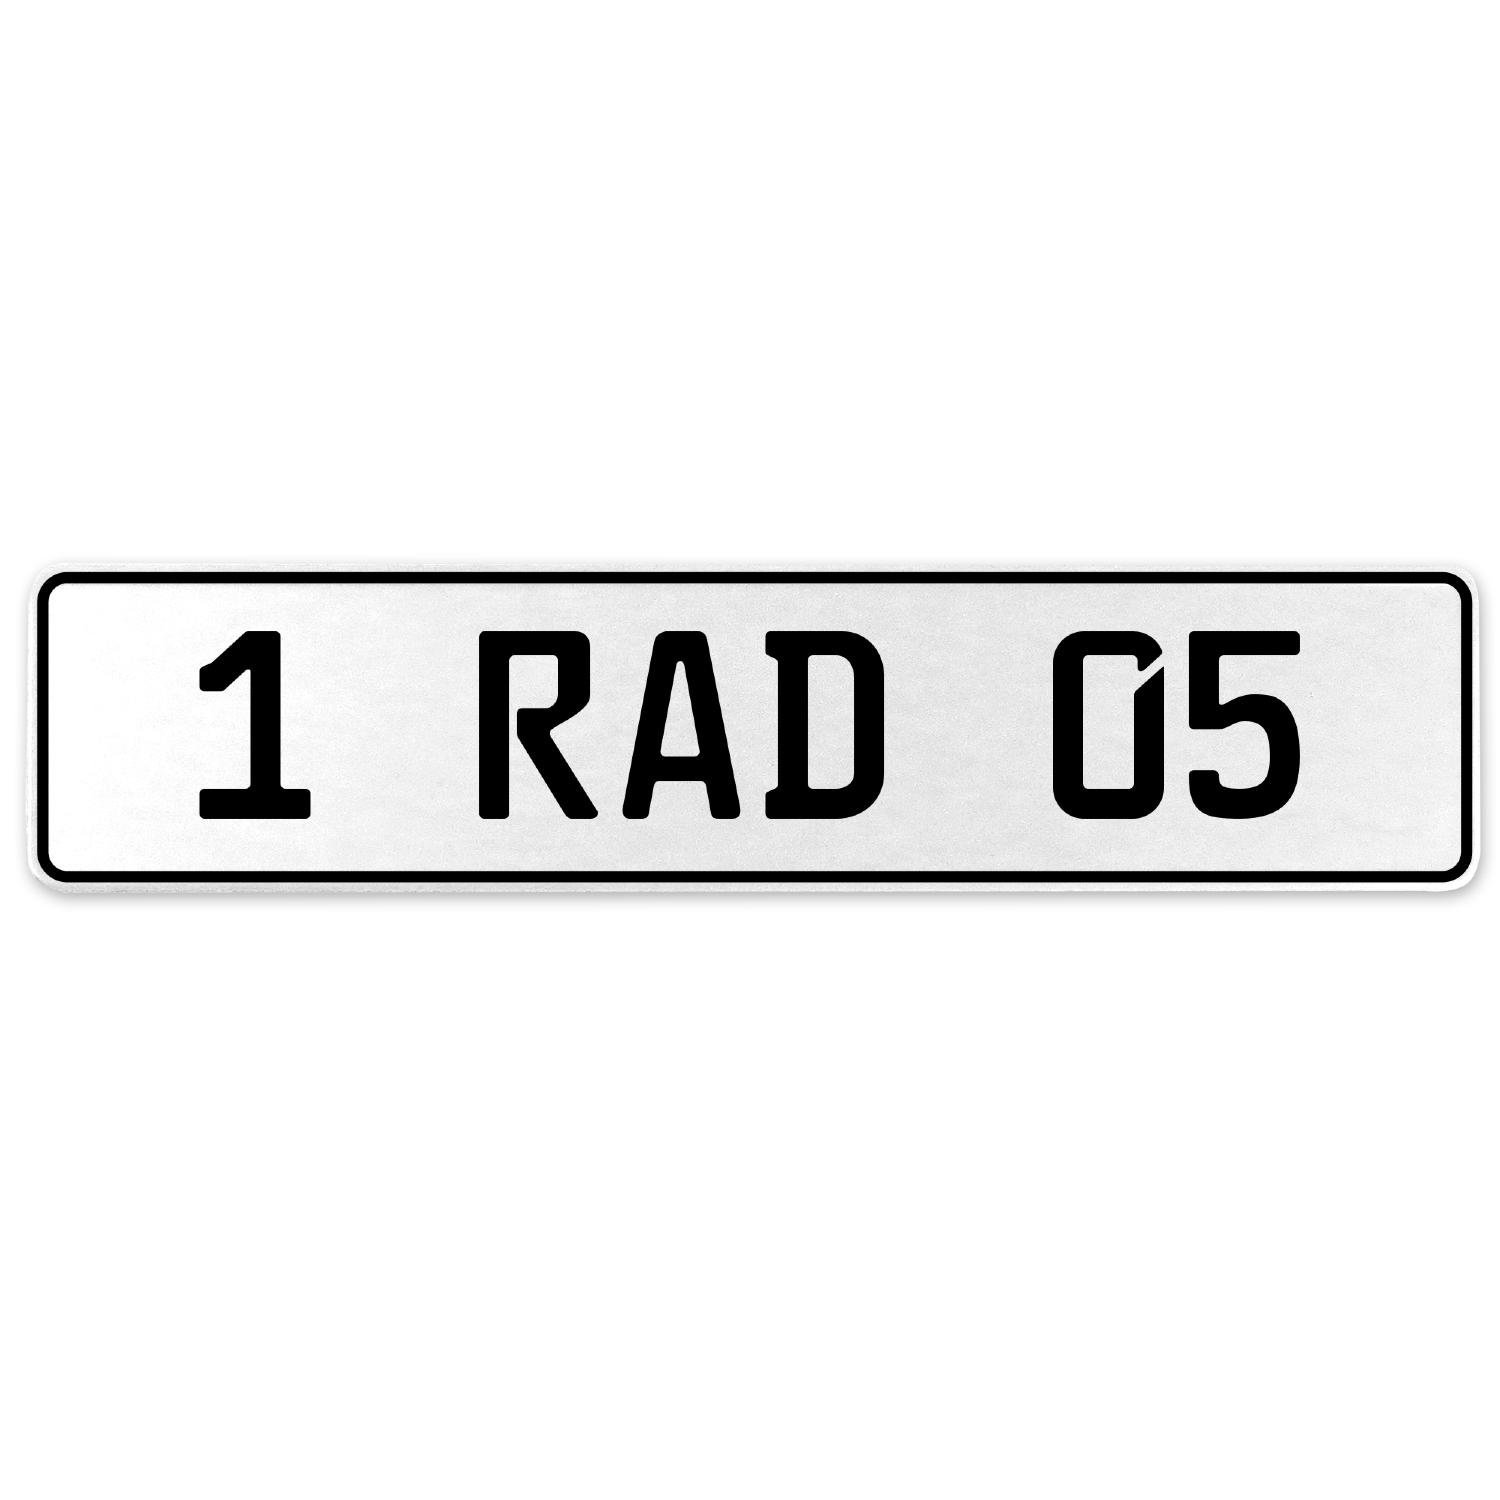 Vintage Parts 554008 1 RAD 05 White Stamped Aluminum European License Plate